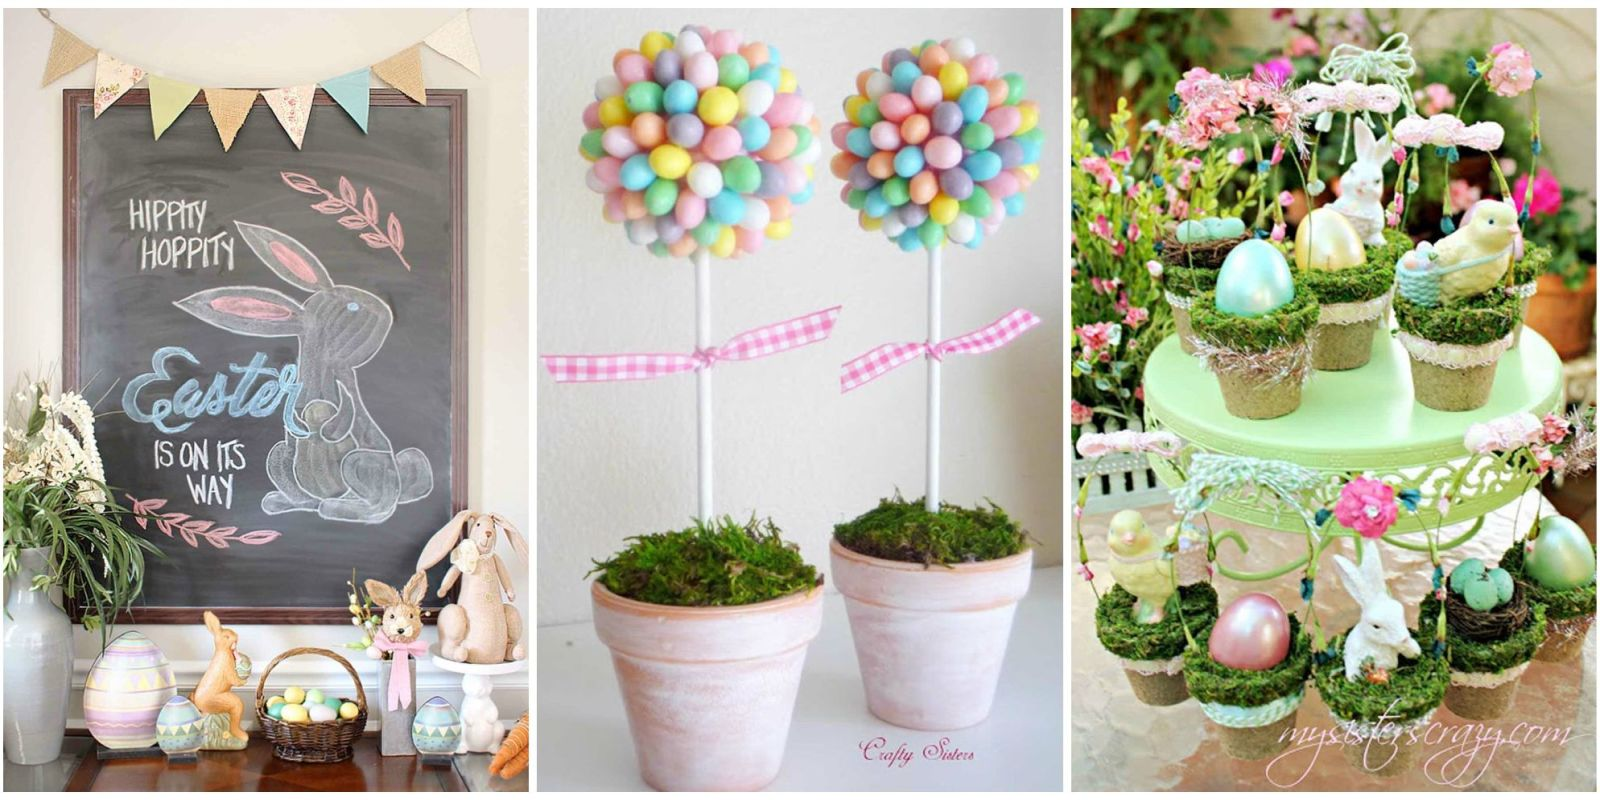 20 diy easter decorations to make homemade easter Images for easter decorations